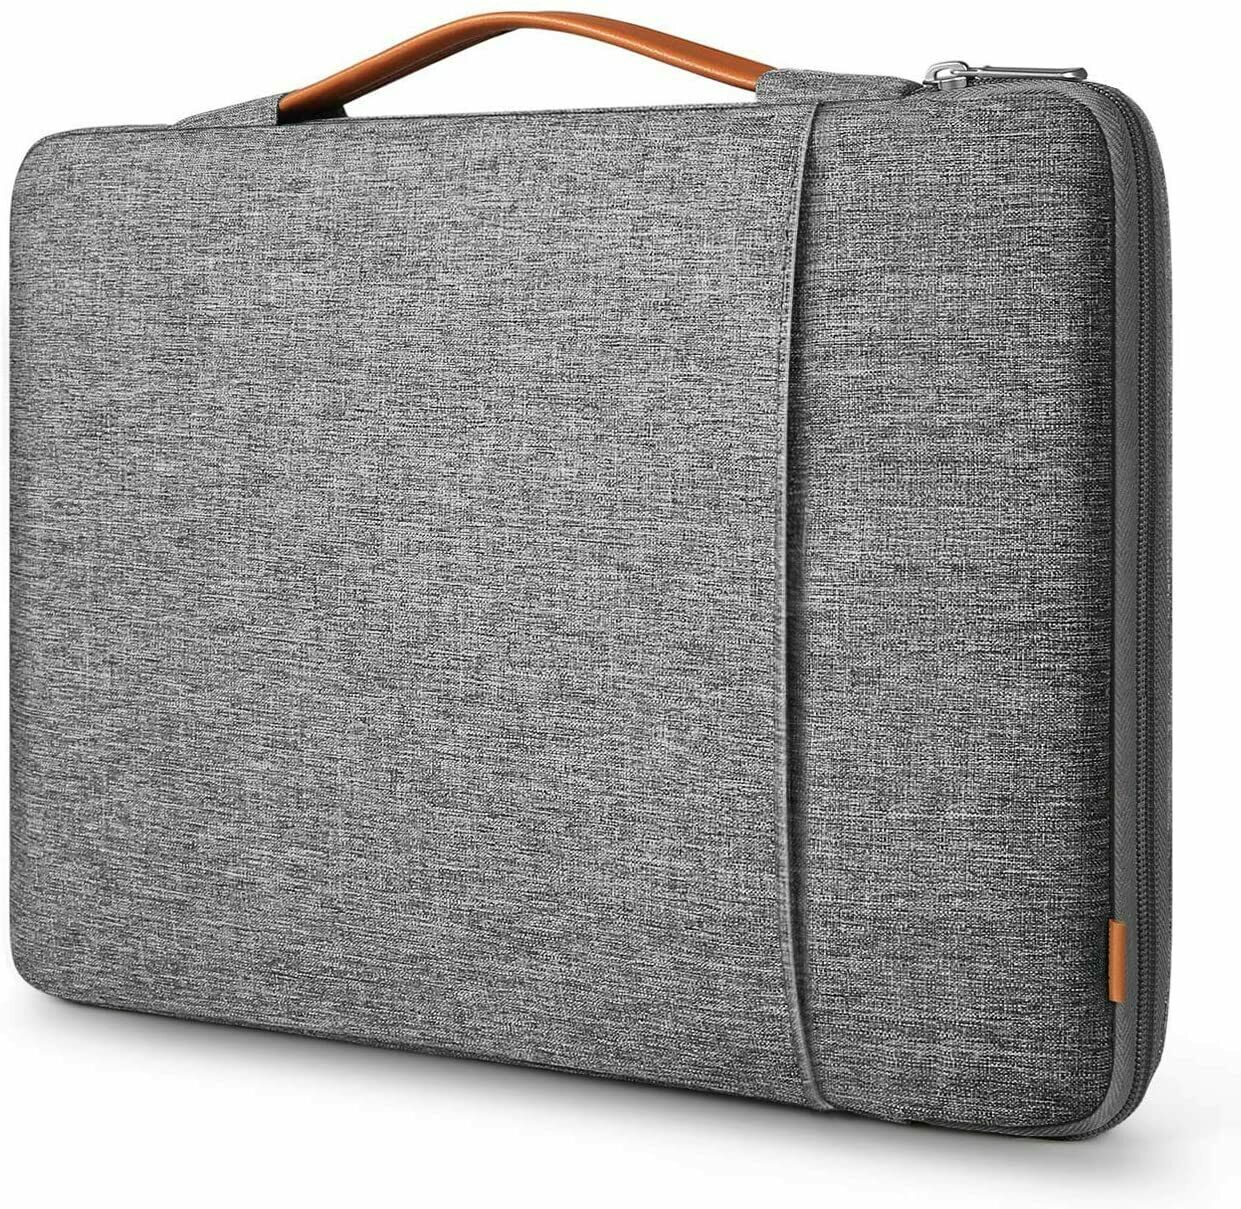 Inateck 15-15.6 Inch 360 Protection Shockproof Laptop Sleeve Carrying Case Bag. Buy it now for 18.99